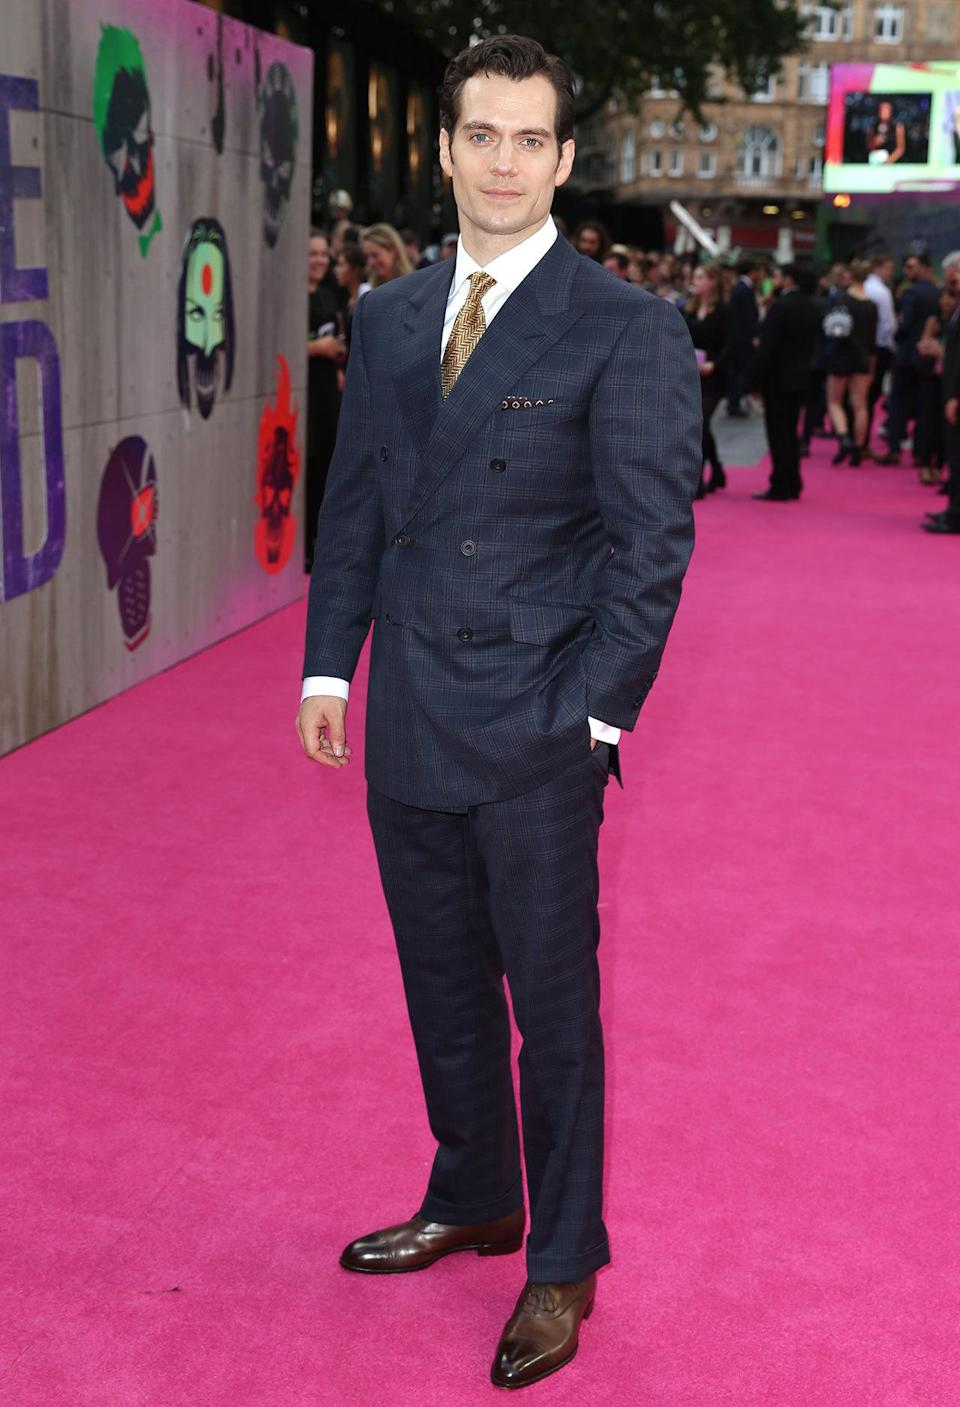 <p>Henry Cavill rocked up in a double-breasted navy suit.</p><p><br></p>